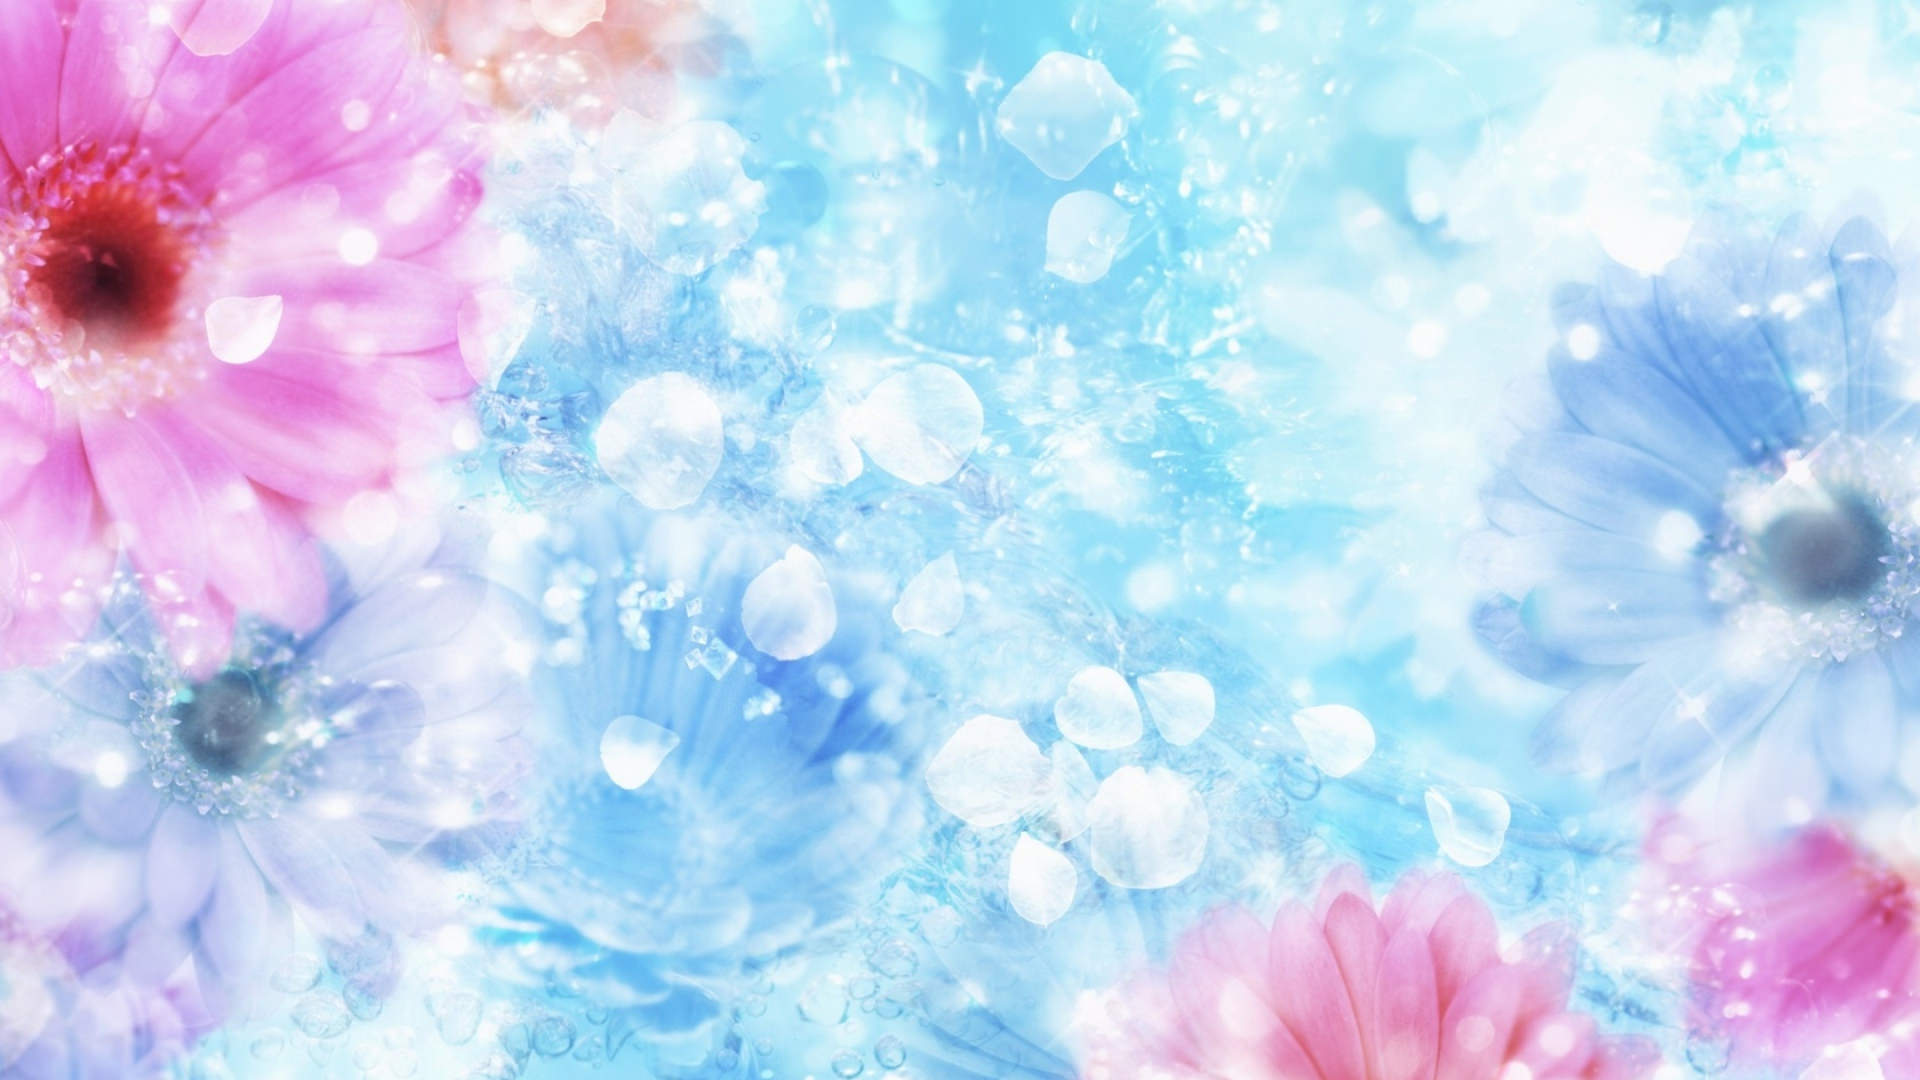 Drops Rainbow 3d Wallpaper 29 Bright Backgrounds Wallpapers Images Design Trends